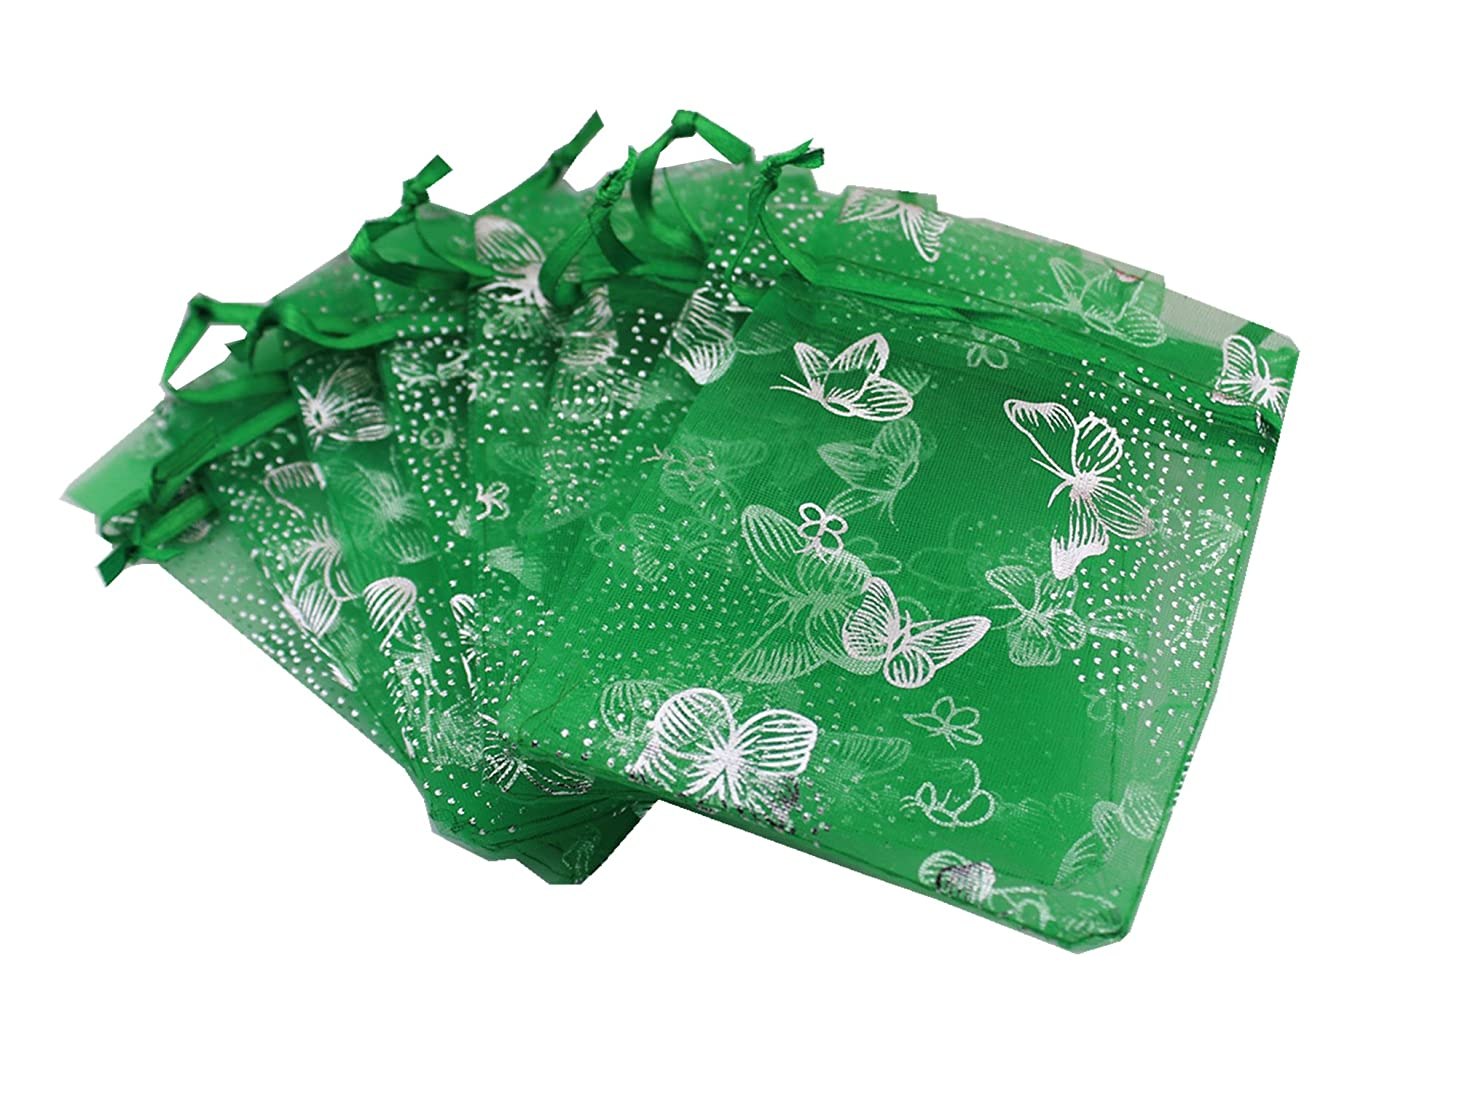 QIANHAILIZZ 5 x 7 Inch 100 Butterfly Organza Jewelry Gift Pouch Candy Pouch Drawstring Wedding Favor Bags (Green, 5x7inch)